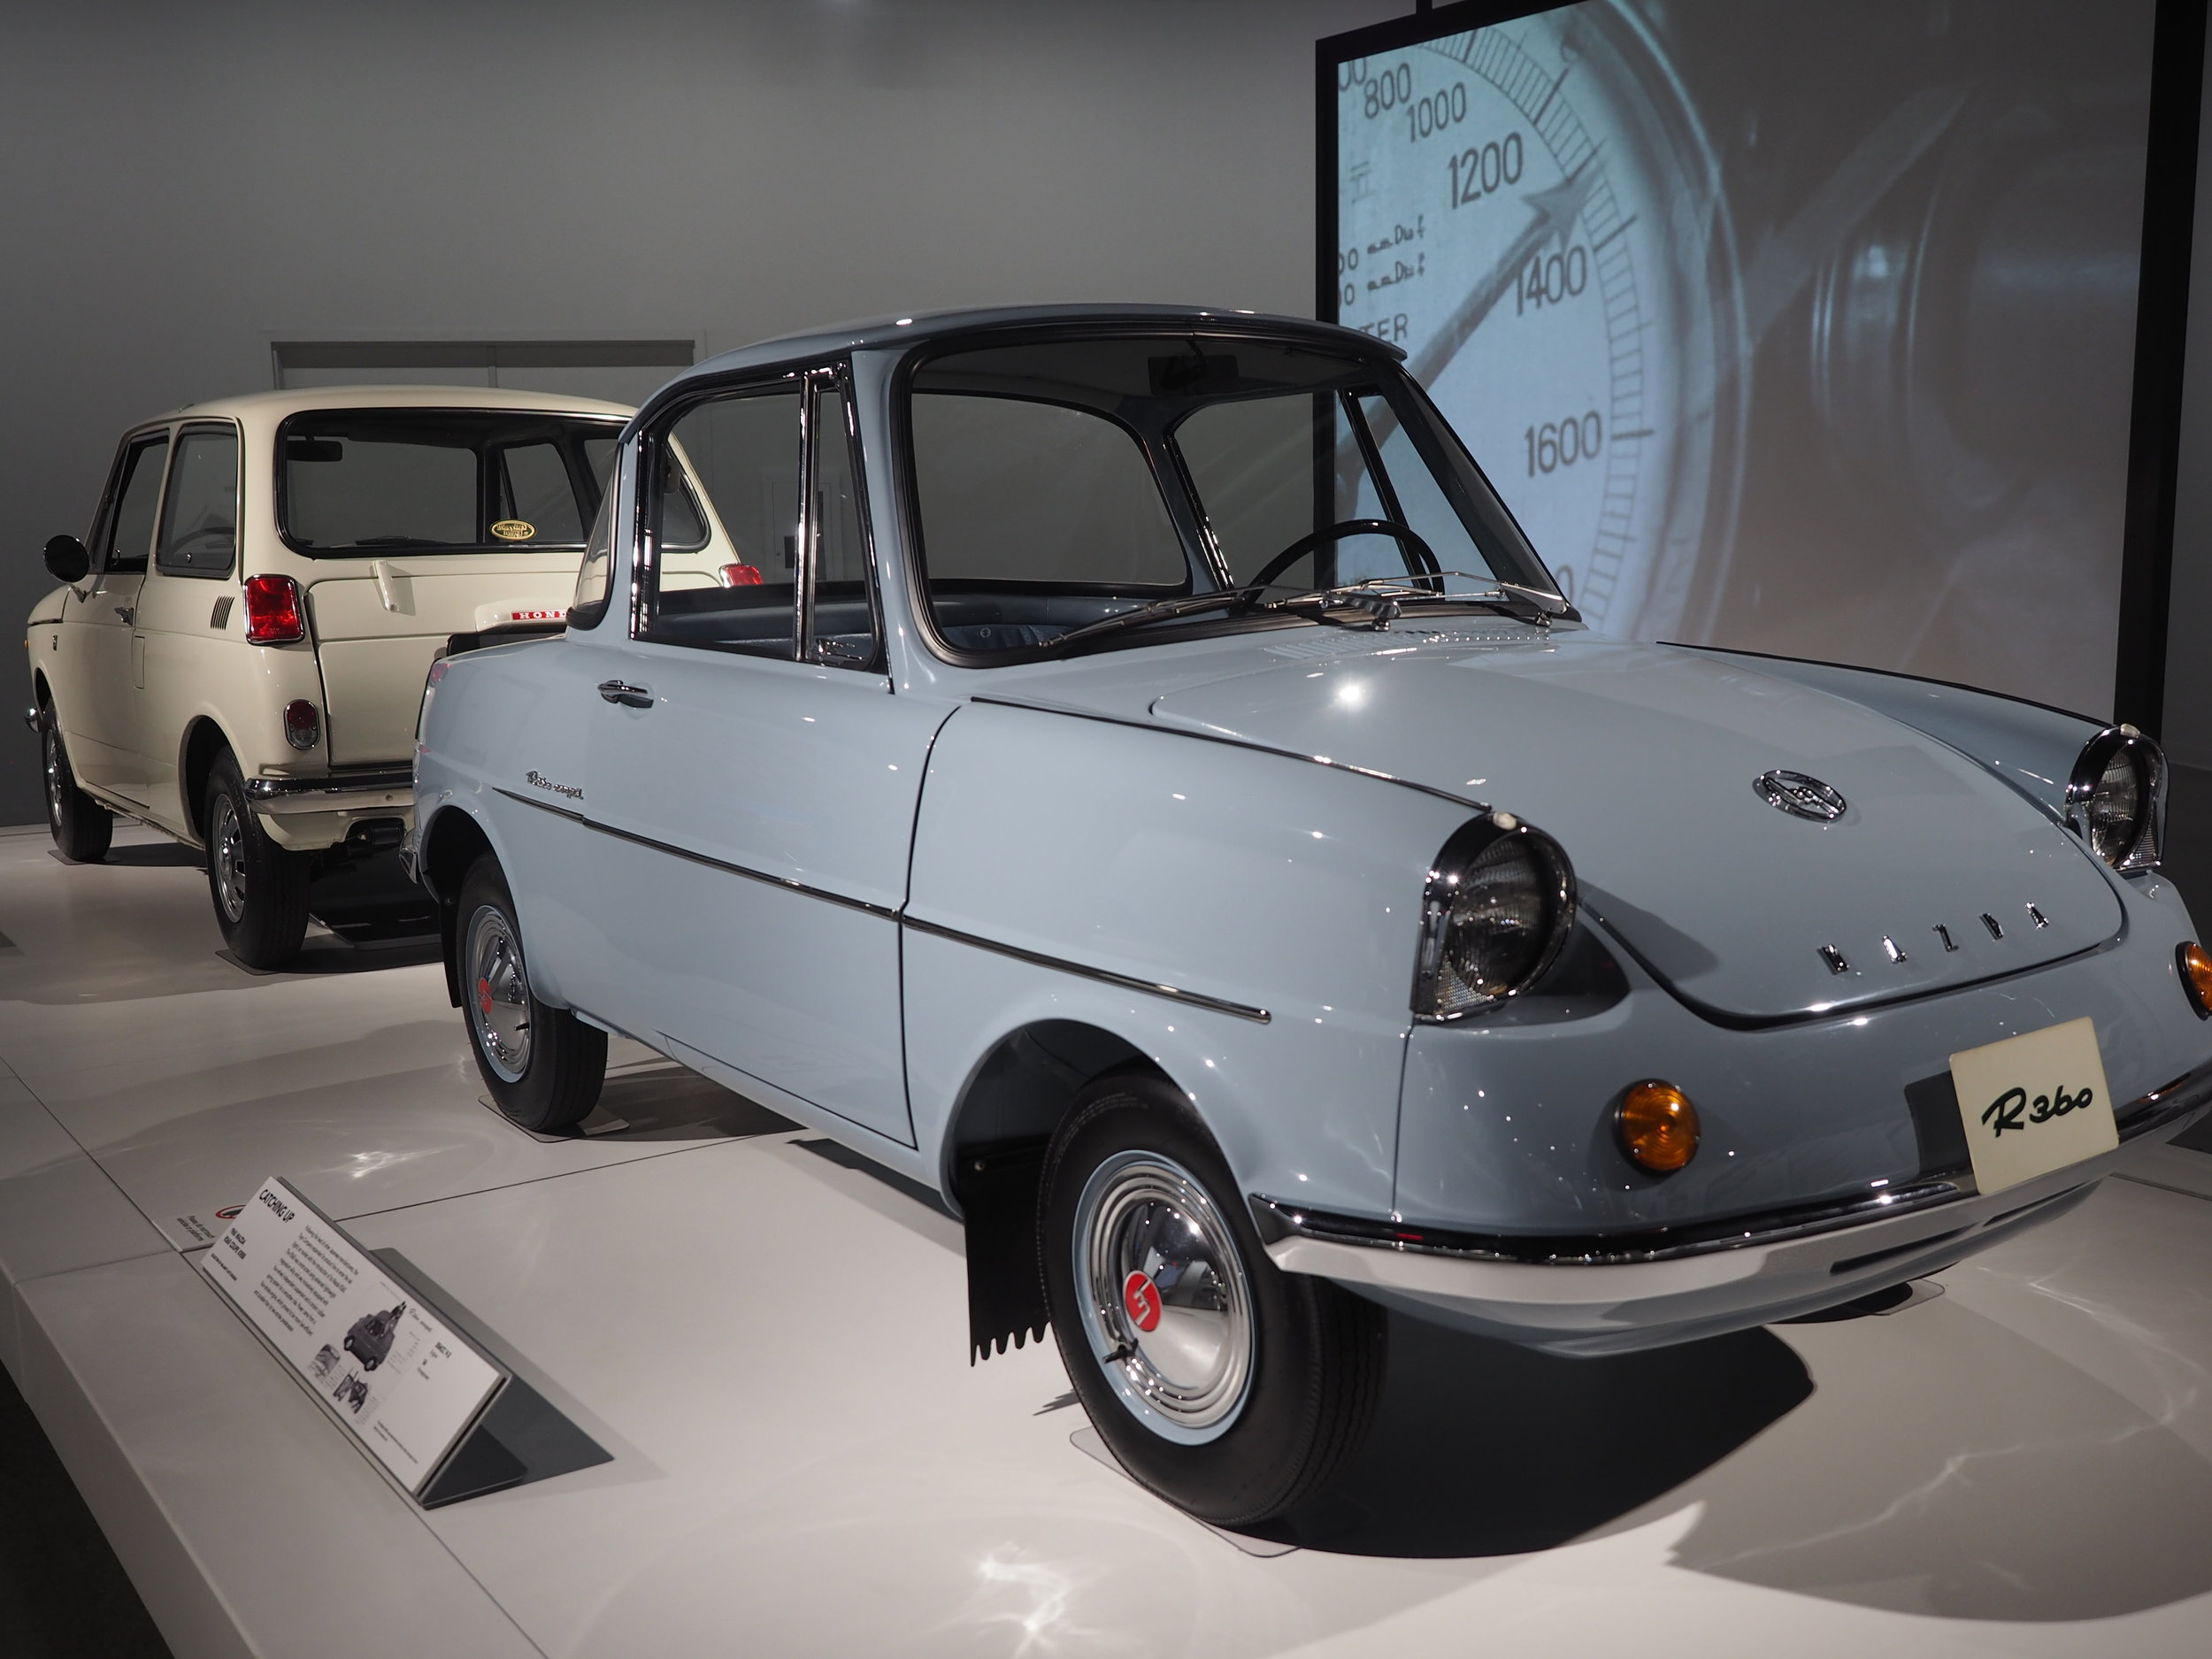 1960 Mazda R360 Coupe KRBB - Constructed with advanced lightweight materials (including magnesium alloy) and four wheel independent suspension.